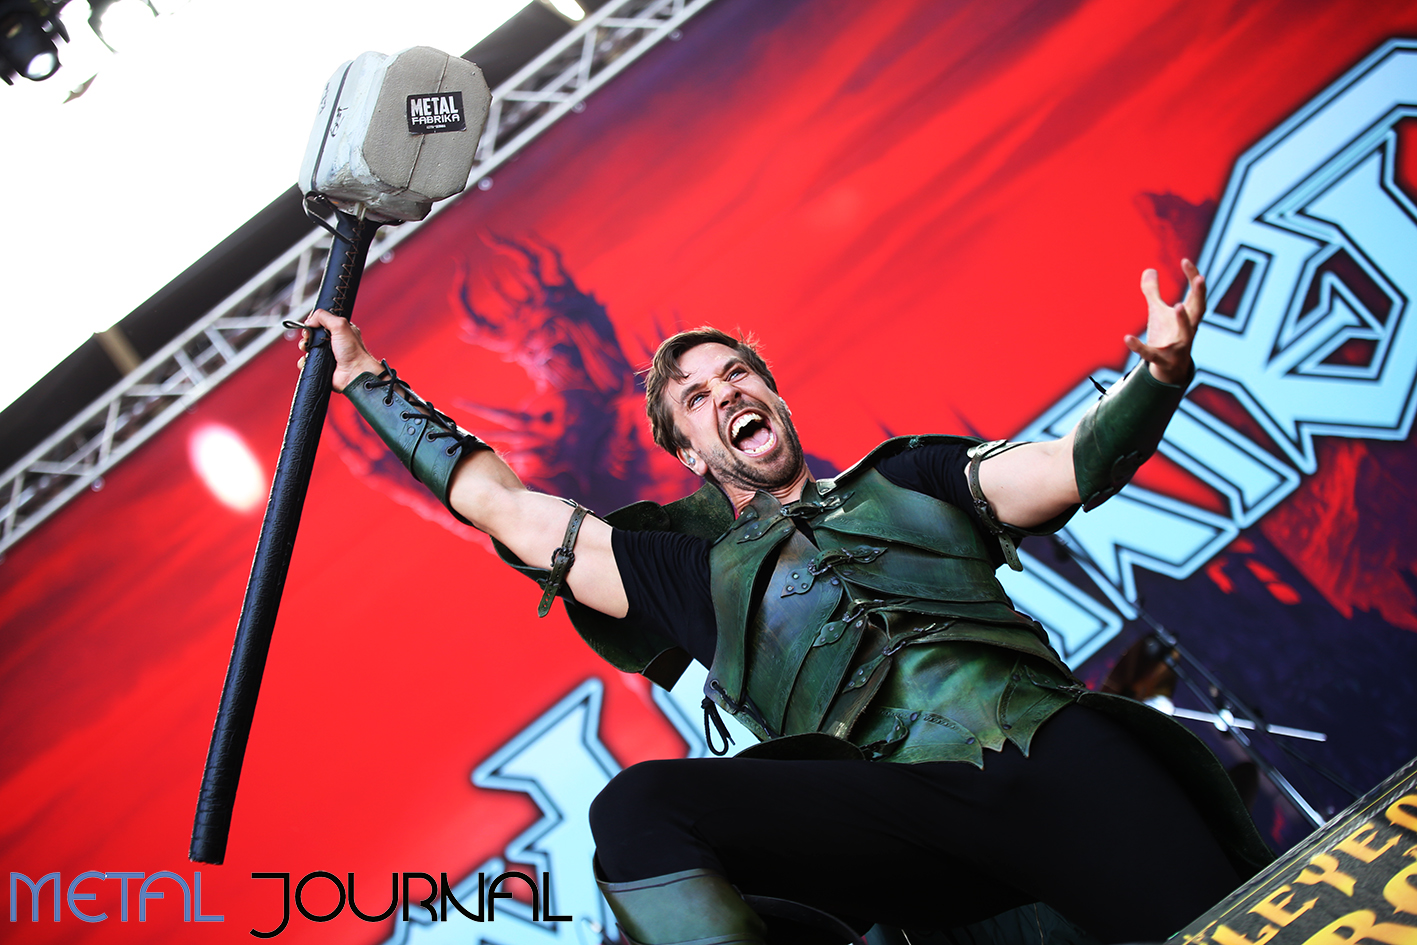 gloryhammer - leyendas del rock 2019 metal journal pic 3